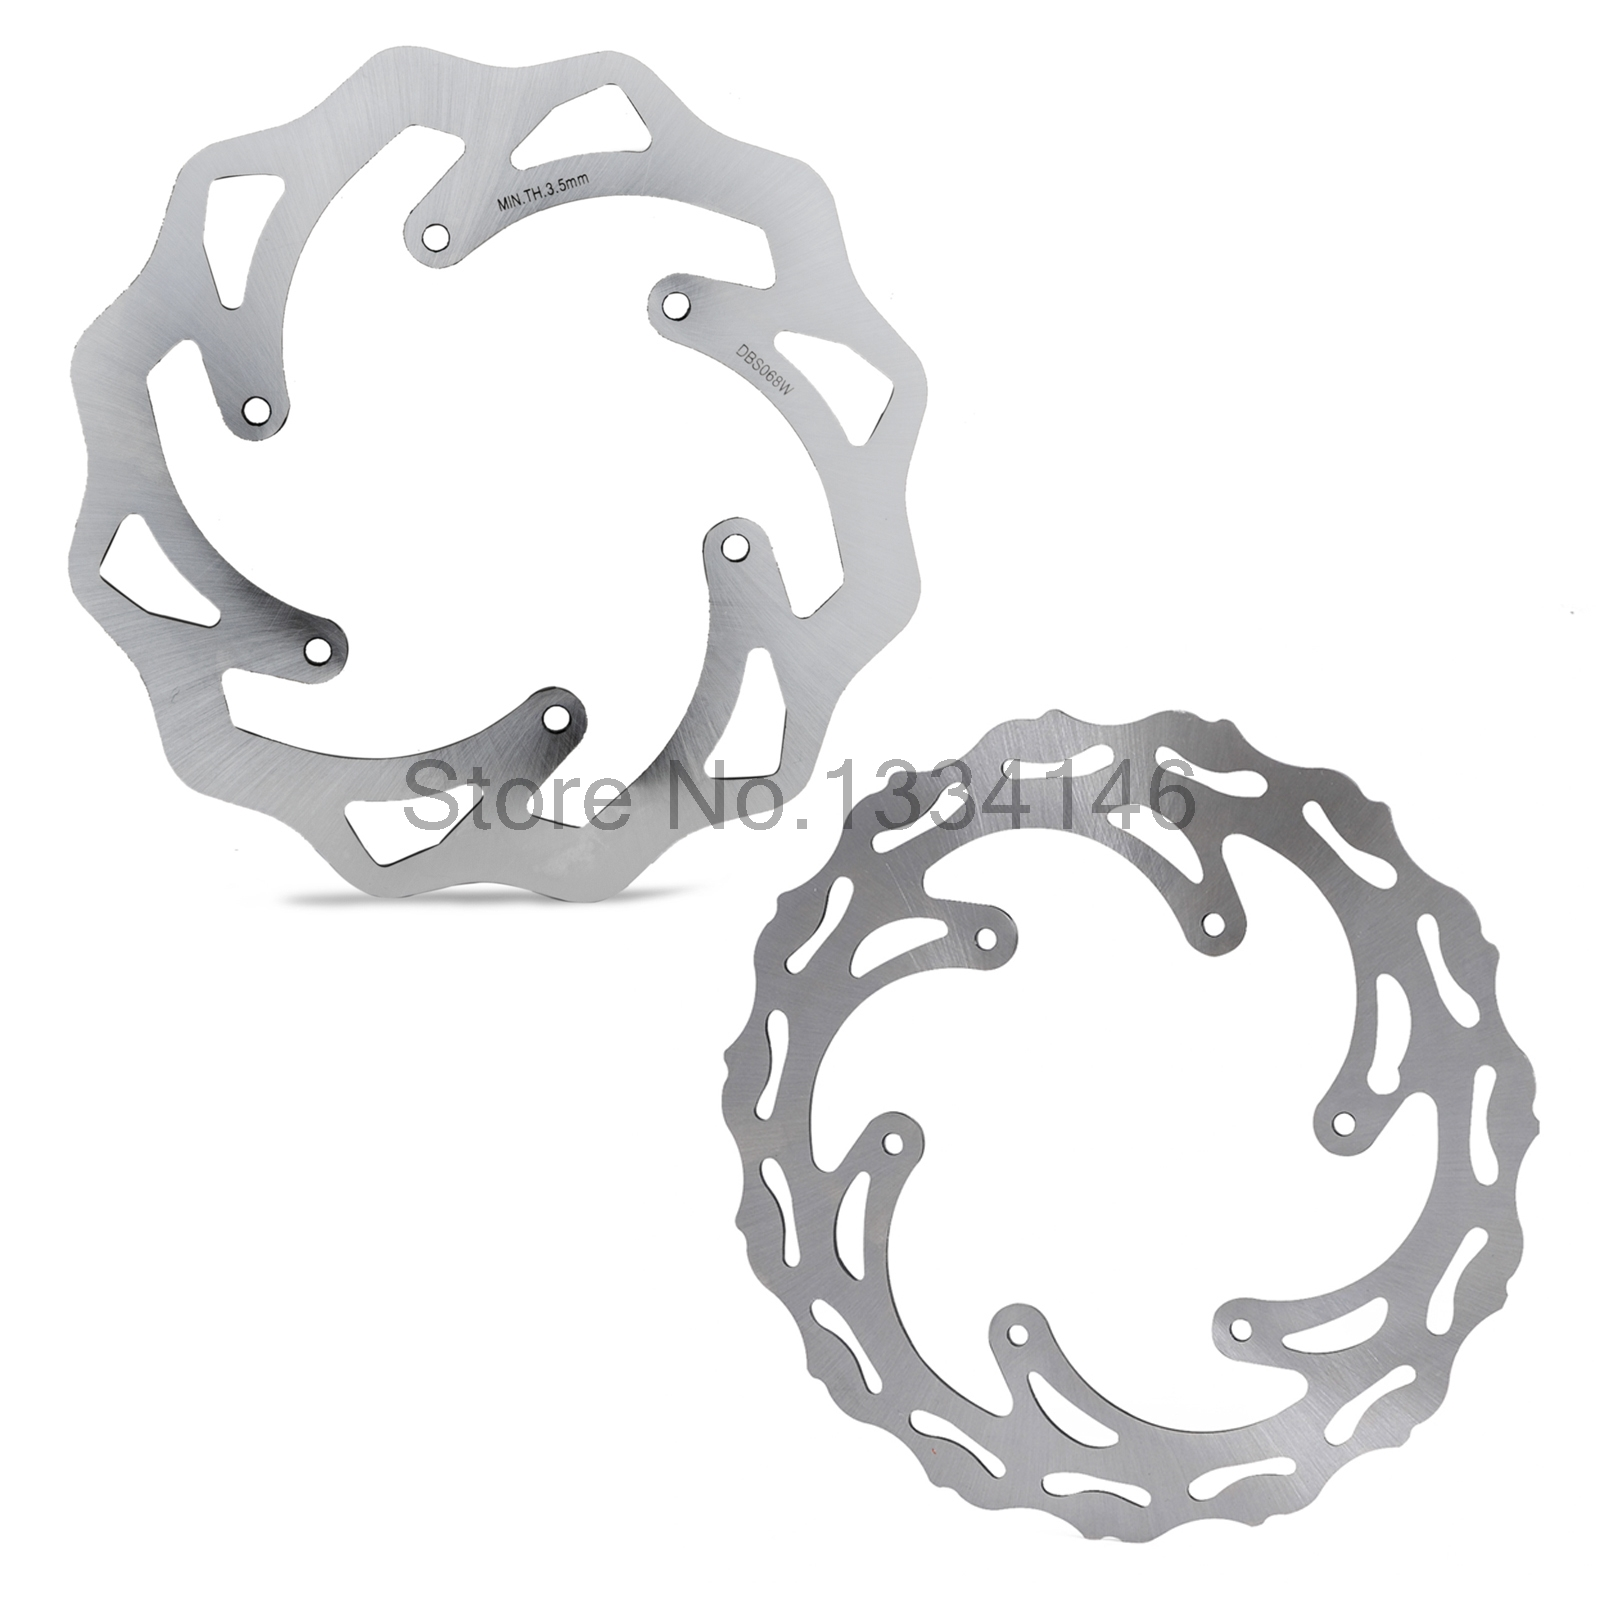 Фотография Front Rear Steel Brake Discs Rotors For KTM 125 200 250 300 390 400 500 525 530 SX SXF EXC EXCF XC XCW XCF XCFW SMR